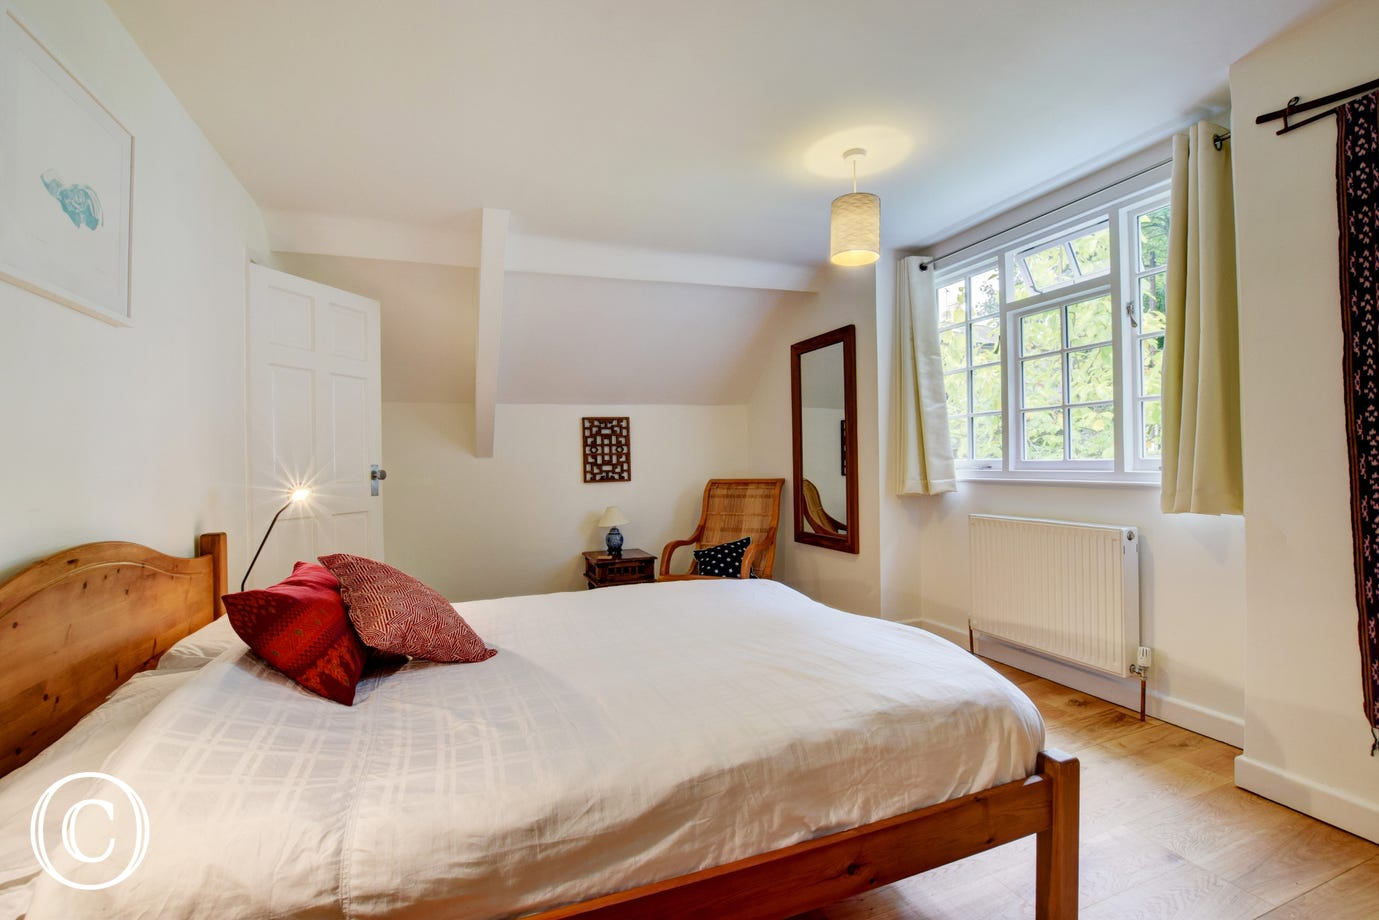 Wild Rose Cottage, Asprington - Bedroom 1 - View 2